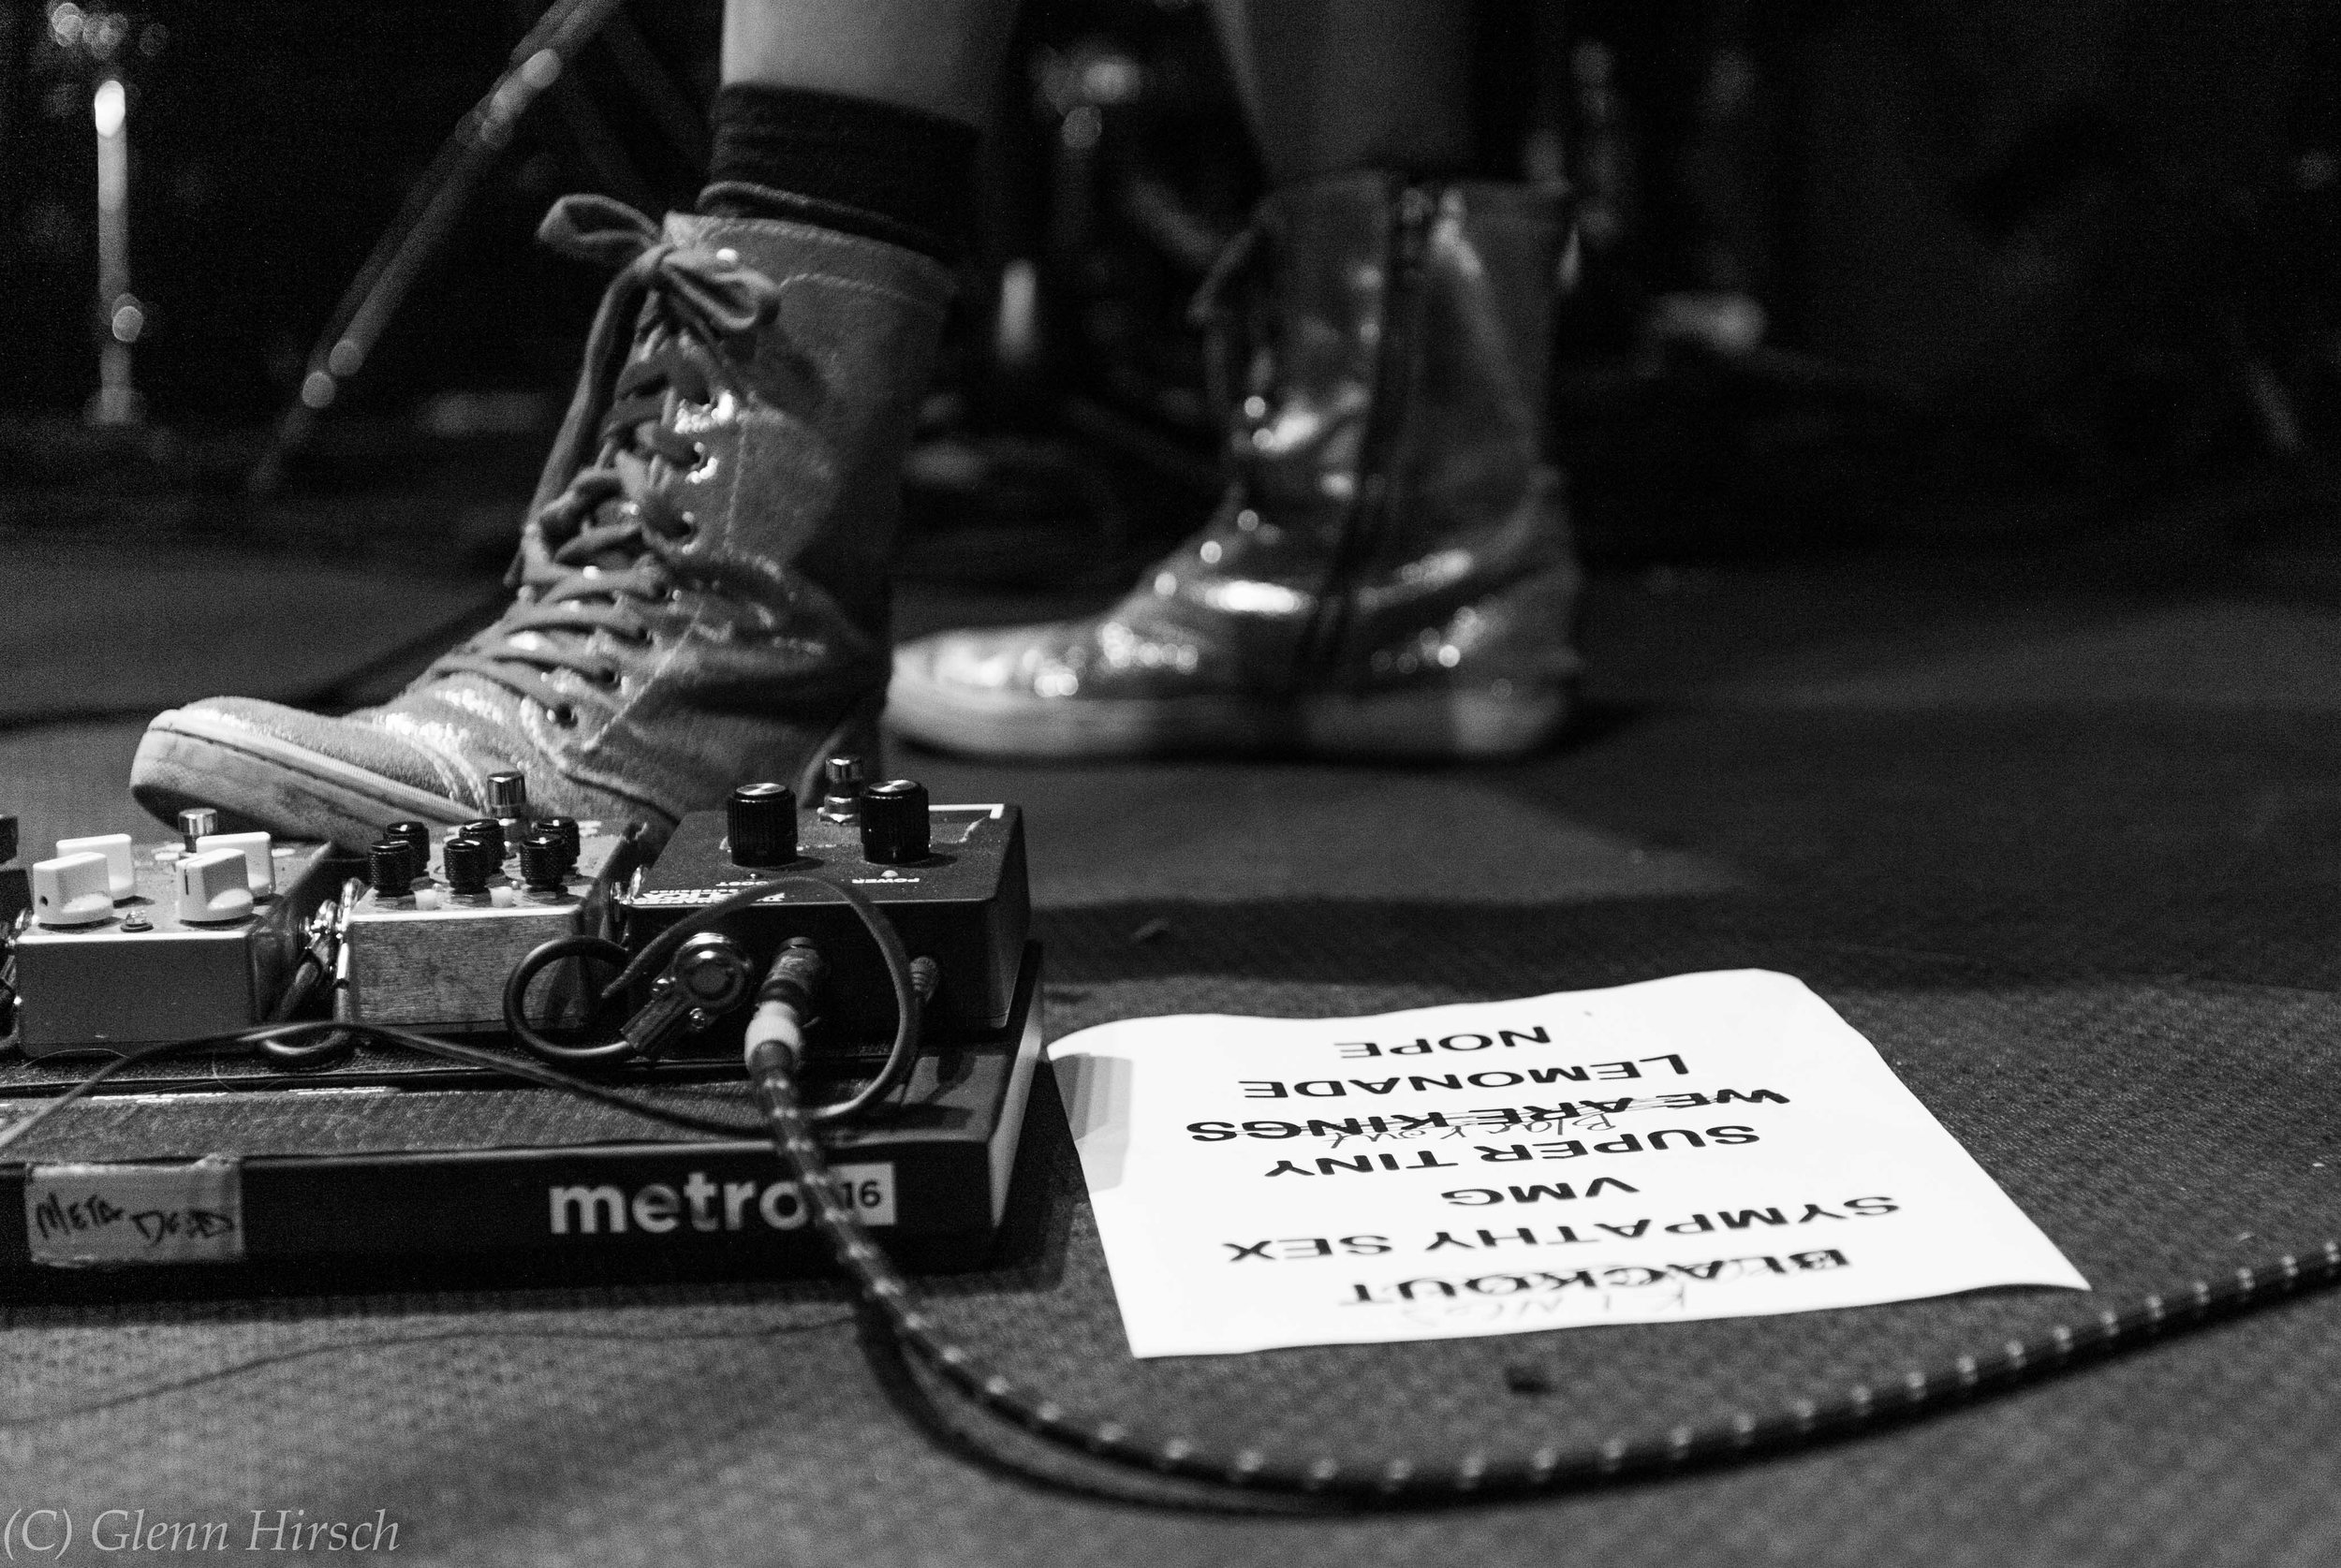 The Dead Deads Mercury Ballroom 2016_0913-8.jpg